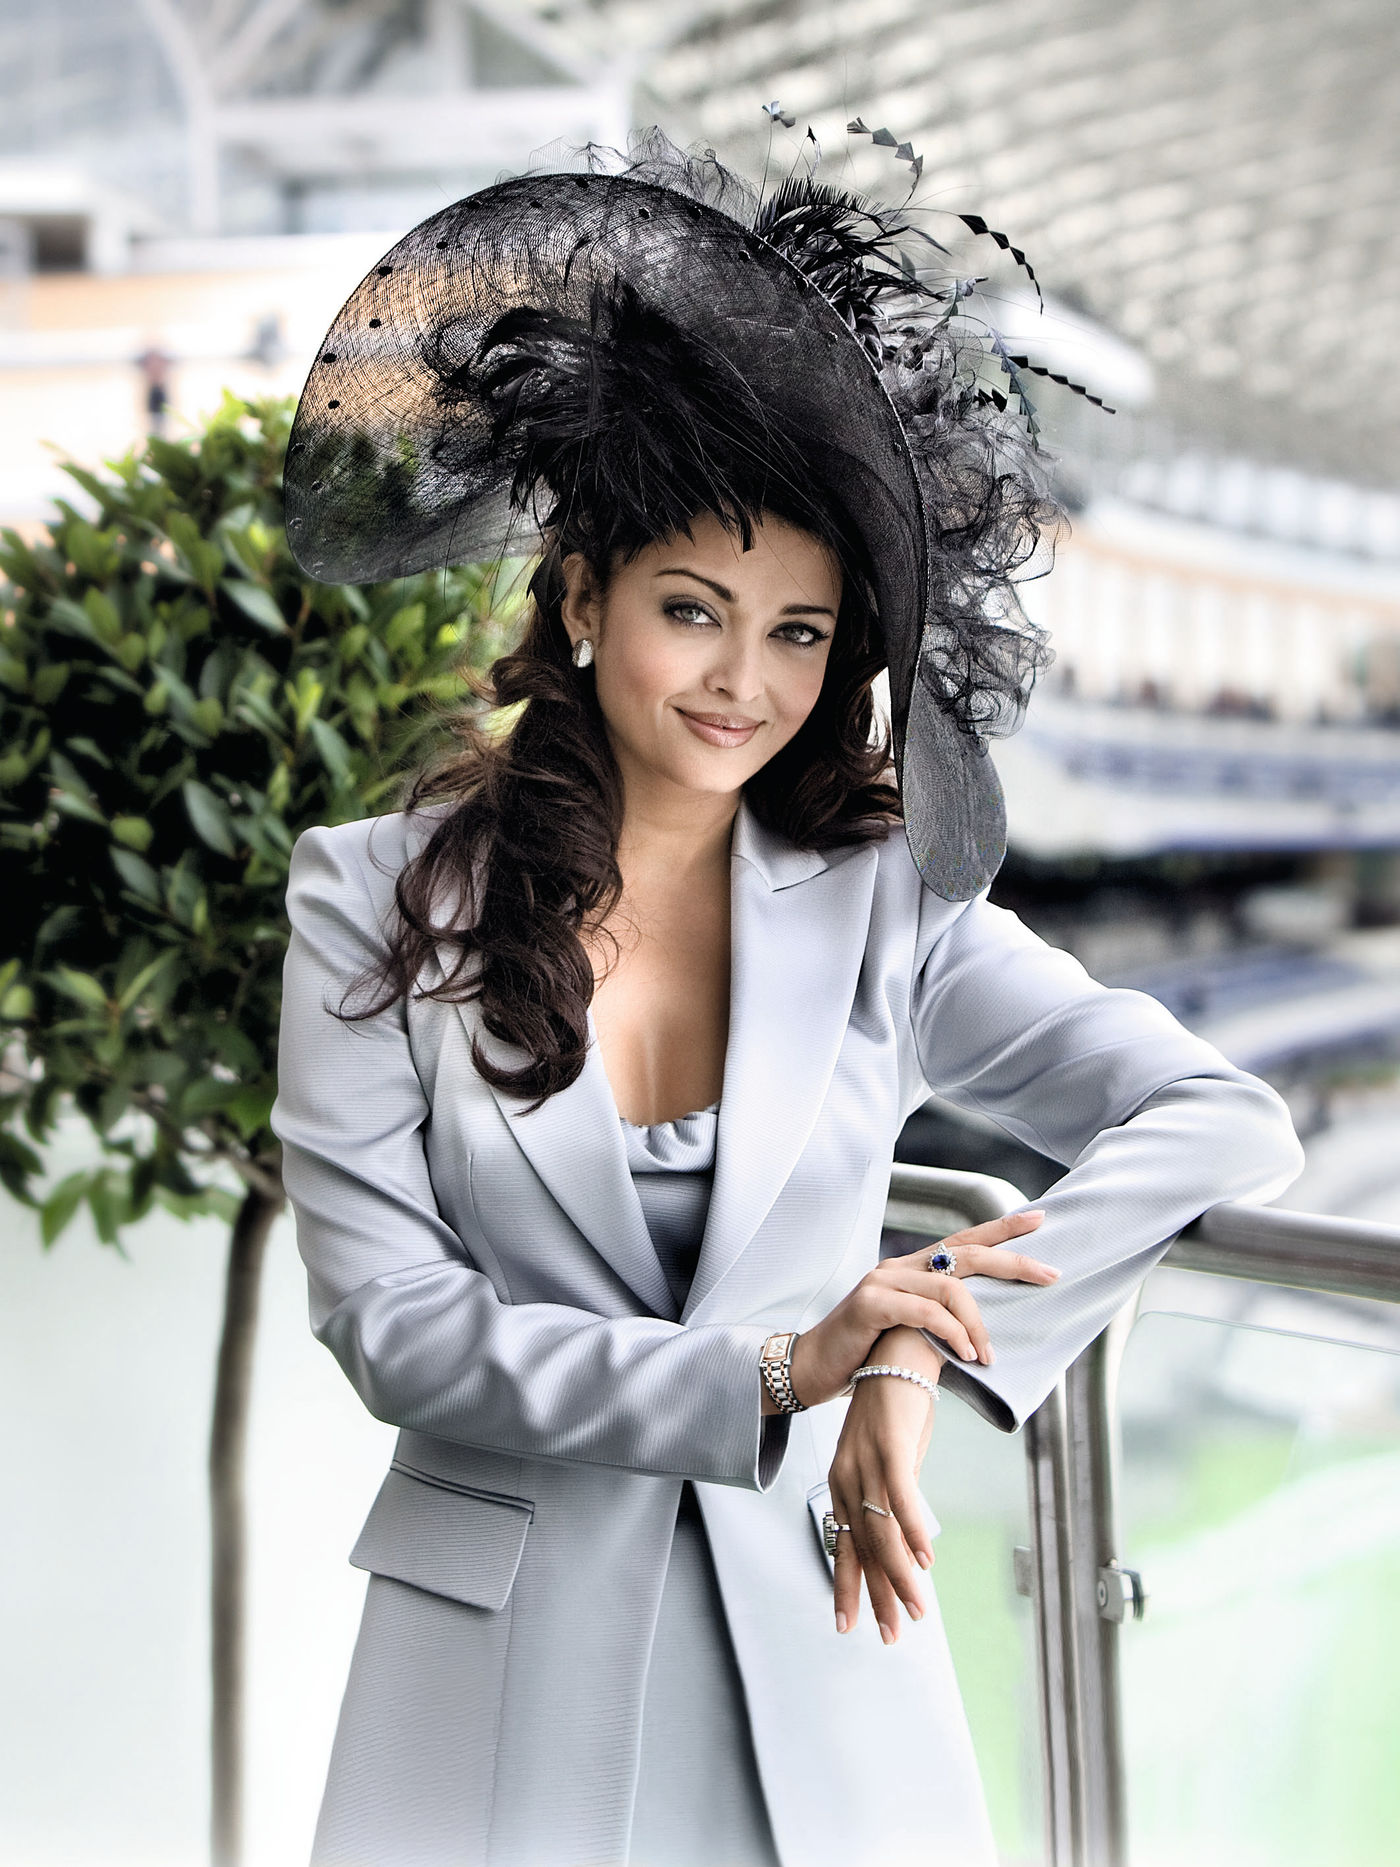 Longines Flat Racing Event: Ascot racecourse and Longines sign five year official partnership agreement 2